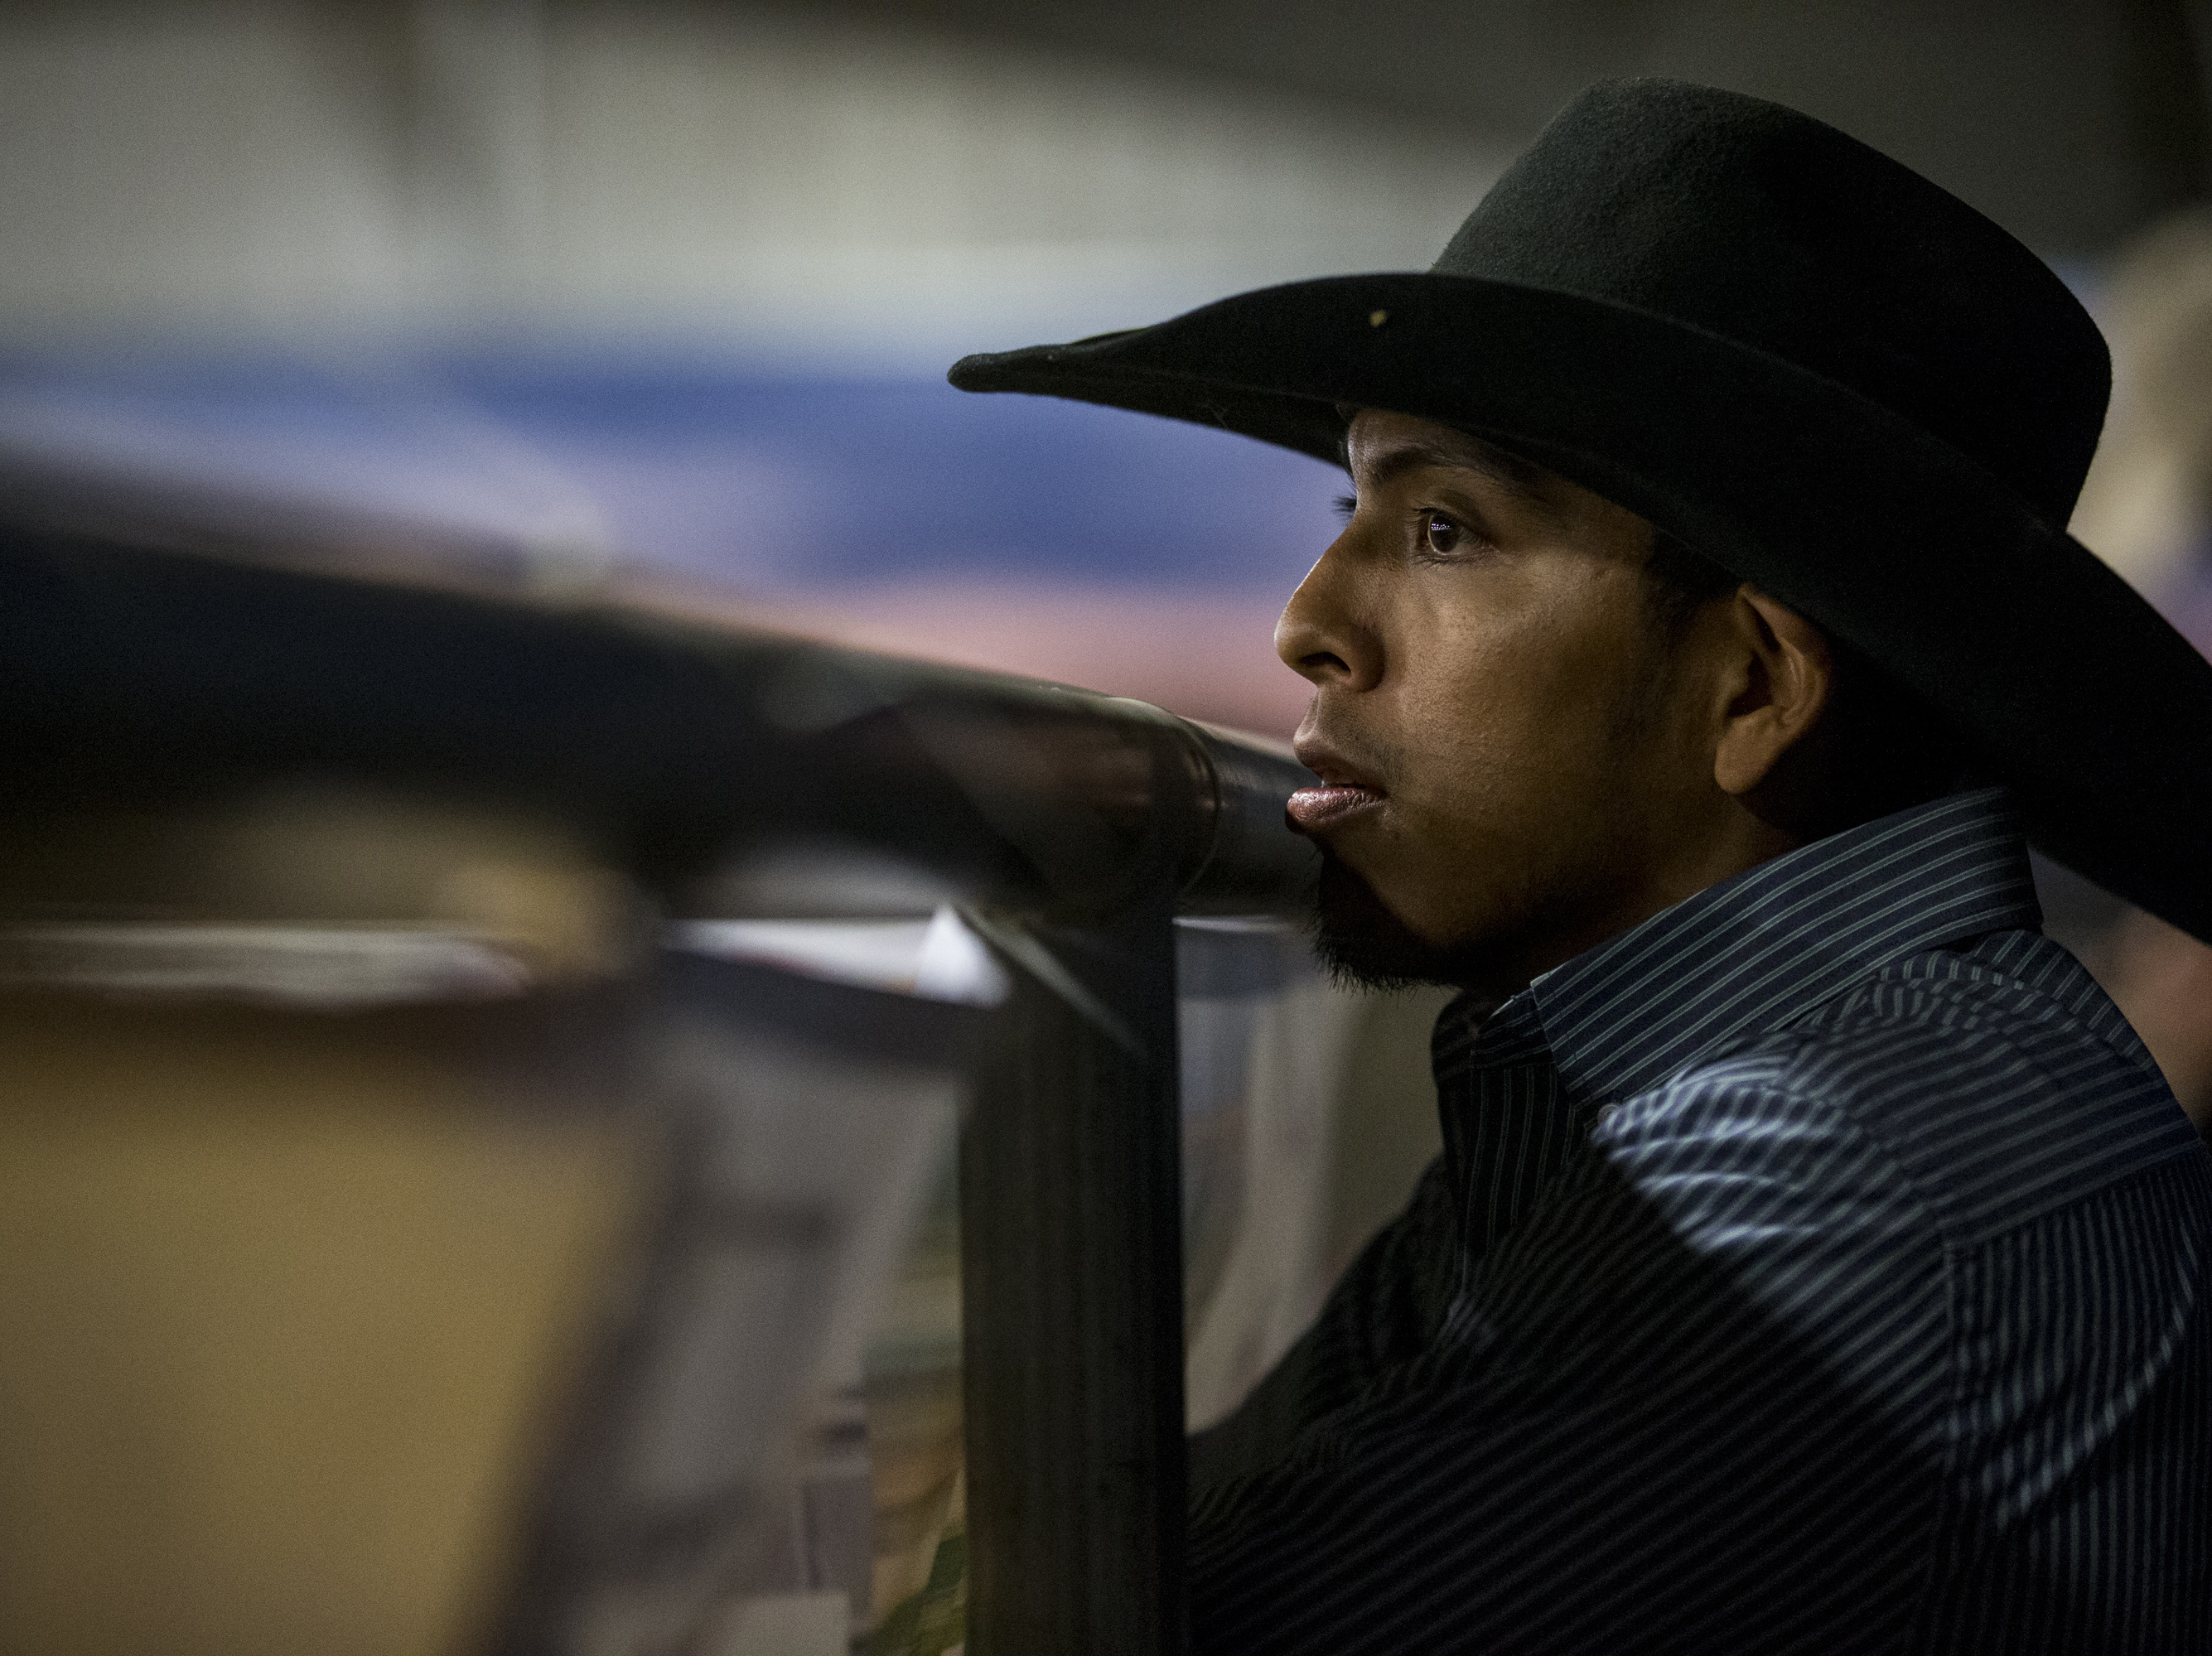 Jalen Joaquin gets ready during the Gilbert Days Rodeo on Saturday, Nov. 17, 2018, in Gilbert, Ariz.